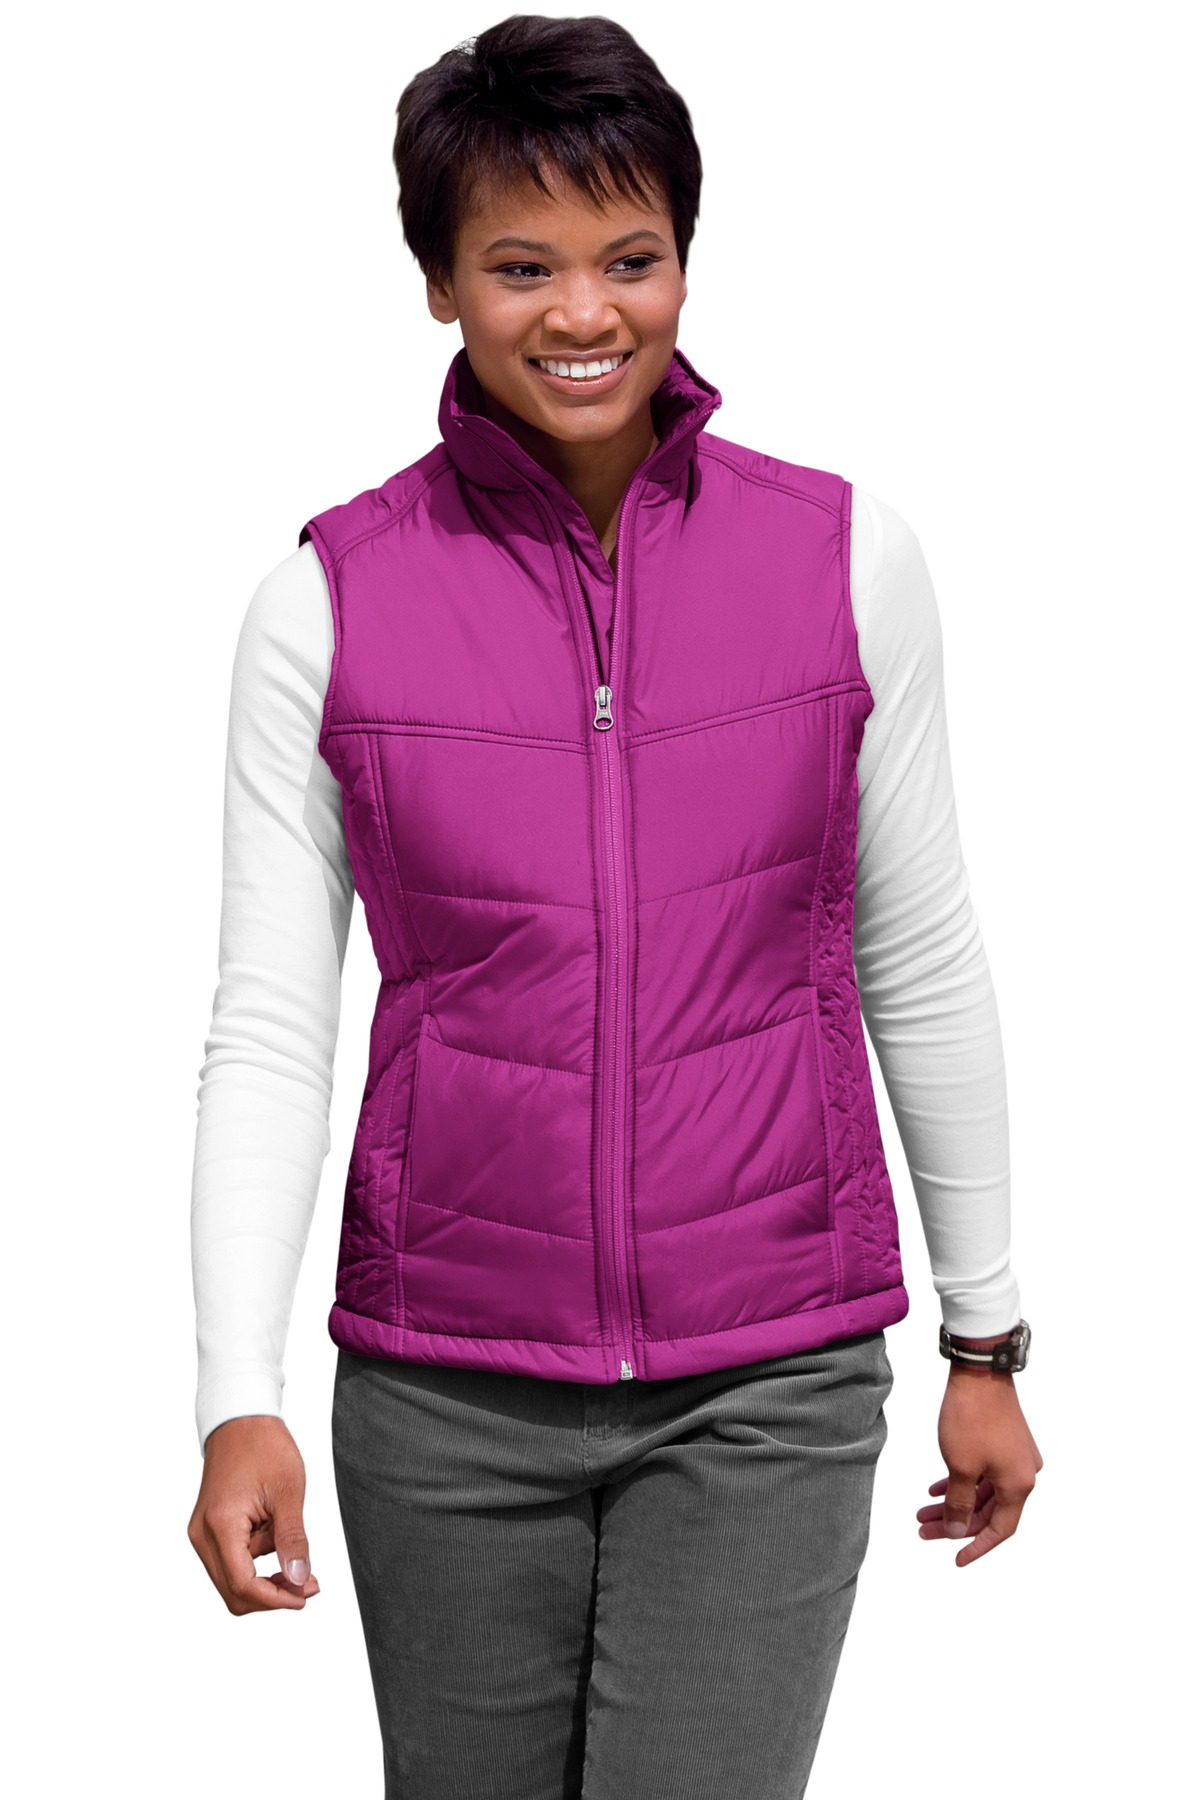 Outerwear-Vests-23